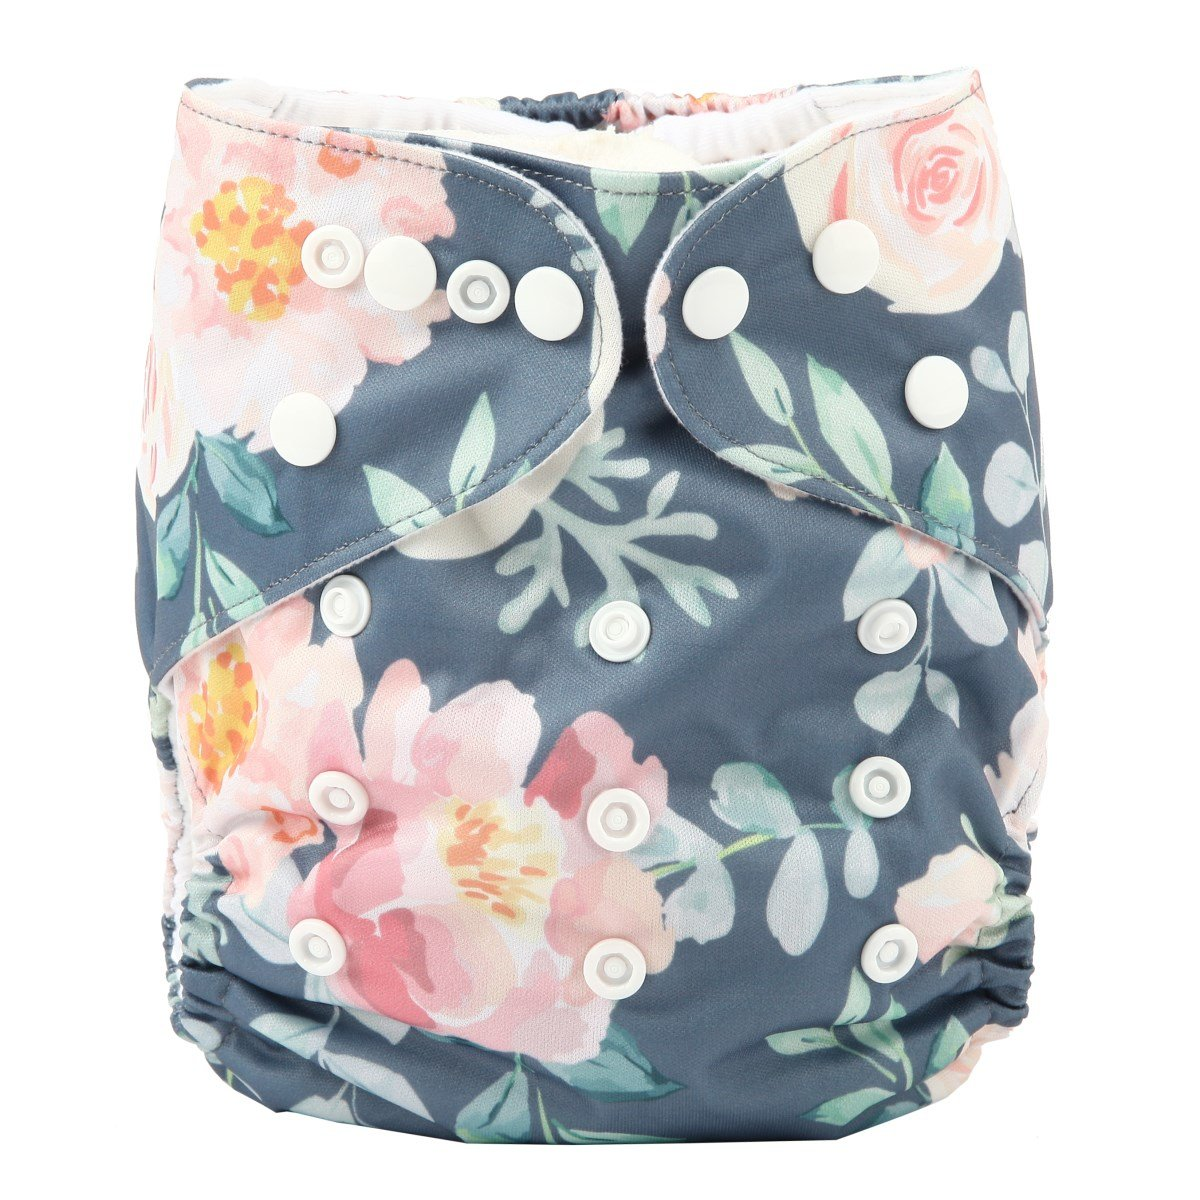 Baby Pocket Cloth Diaper Nappy Bamboo Charcoal Double Gussets Reusable Girls Floral Hummingbirds